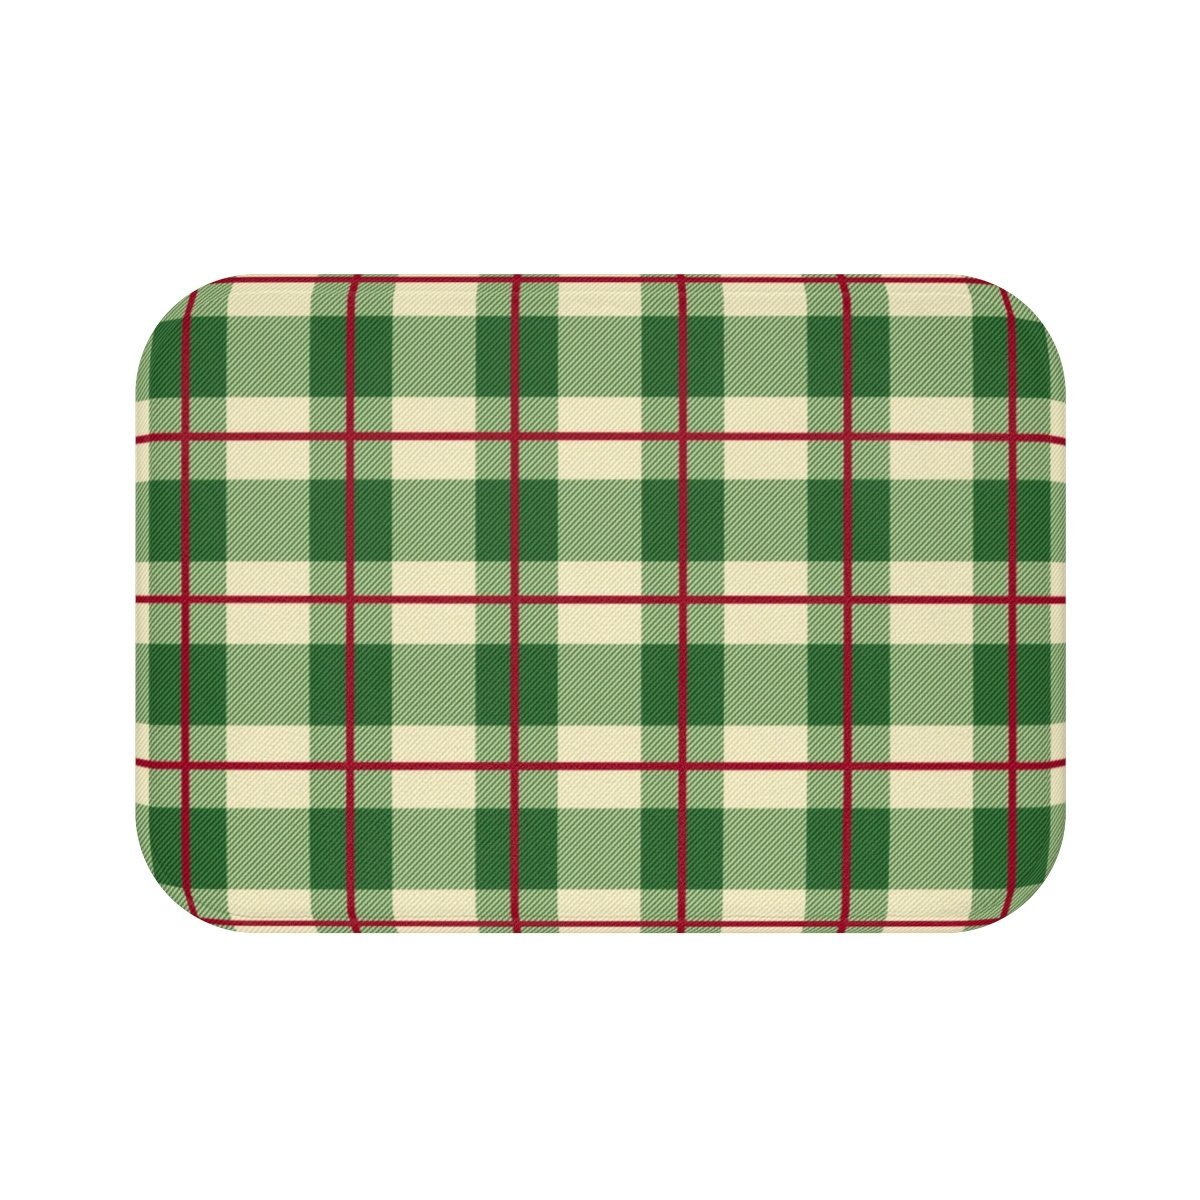 Seasonal & Holiday Christmas Plaid Bath Mat-Bath - Bath Linens - Bath Mats-Maison d'Elite-Small 24x17-Très Elite